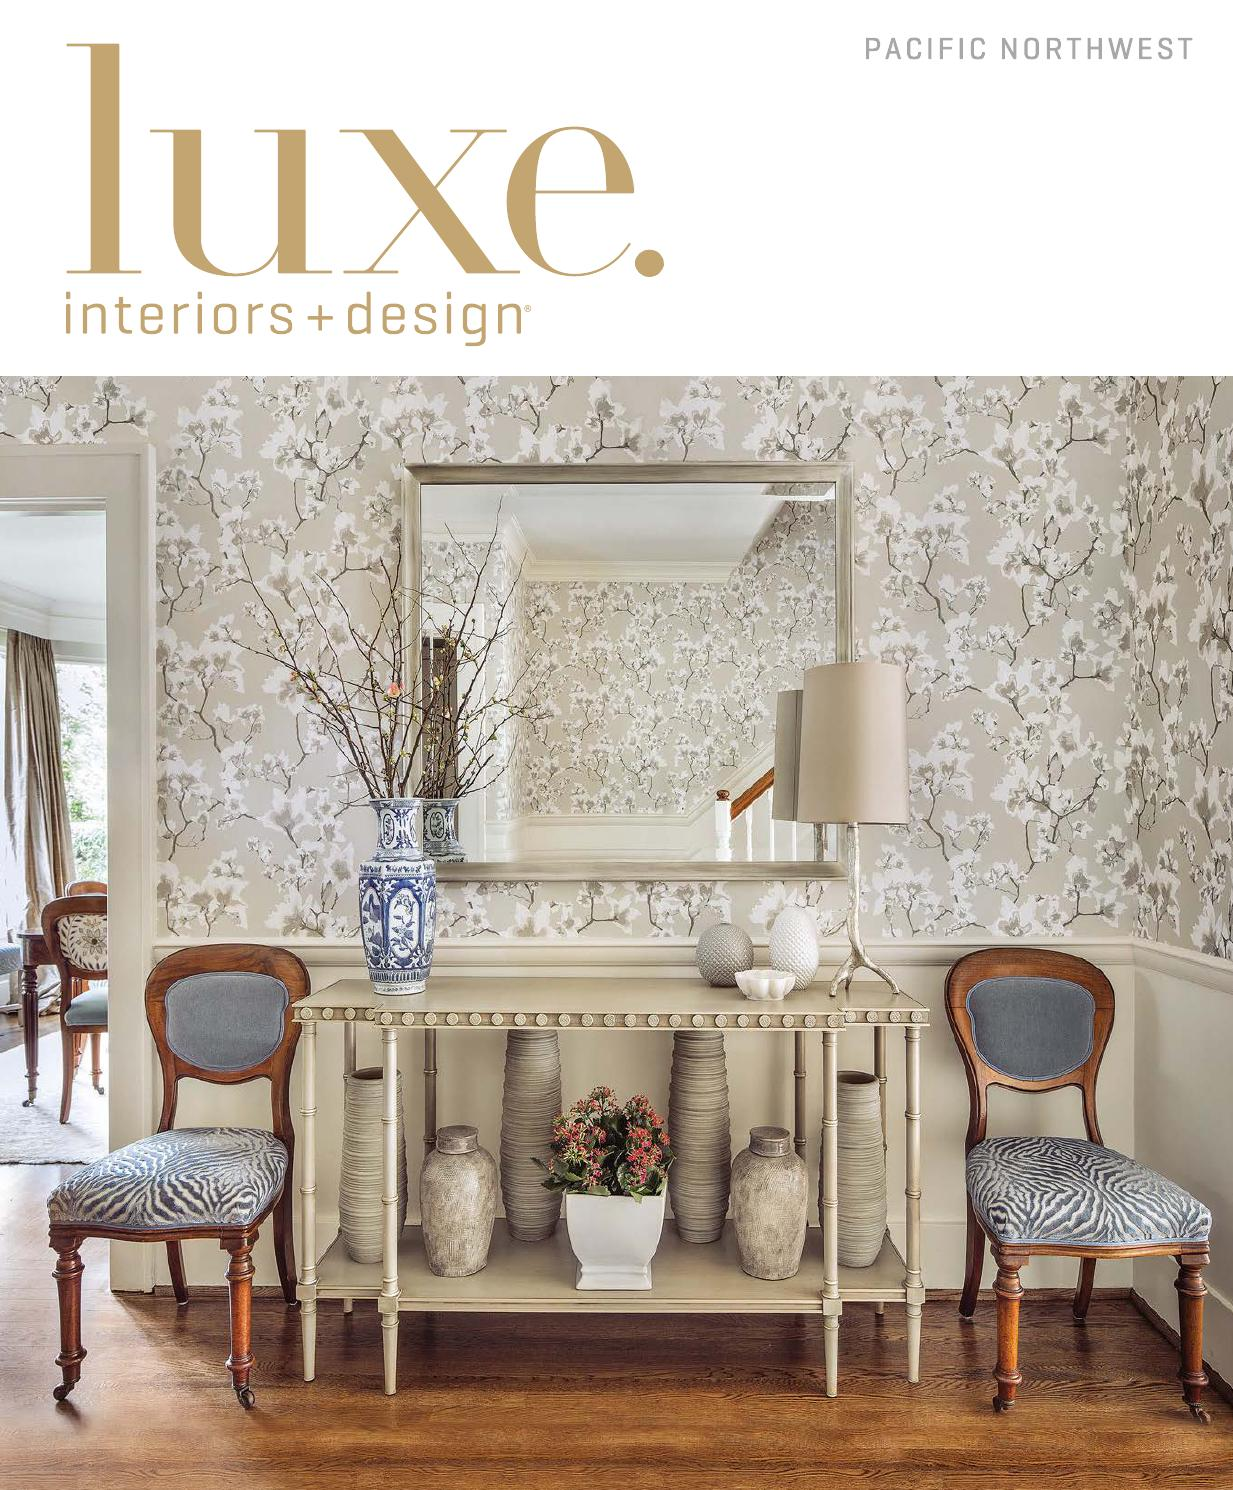 Fauteuils Serenity En Promotion Luxe Magazine November 2015 Pacific Northwest By Sandow Issuu